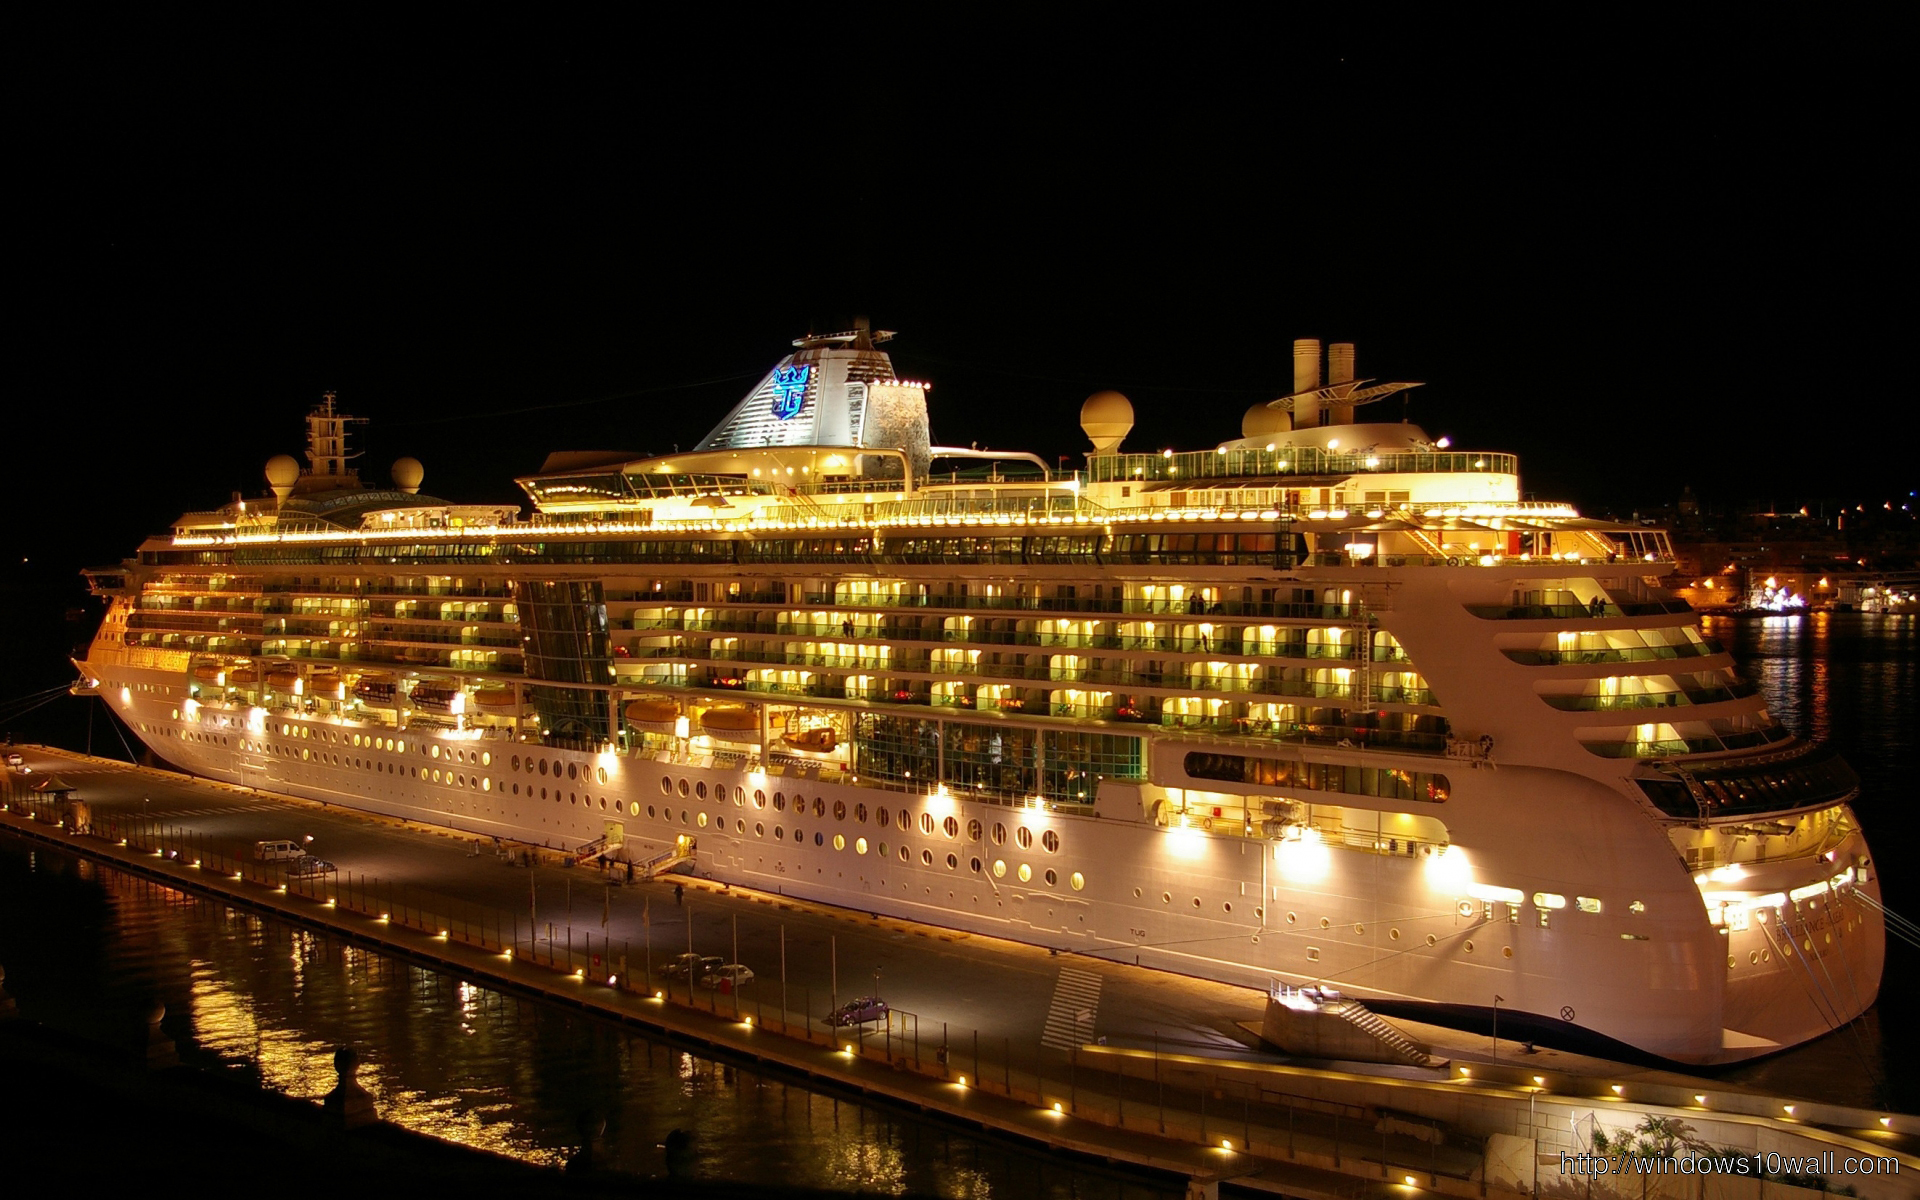 Vehicles Cruise Ship Wallpaper Background Windows 10 Wallpapers